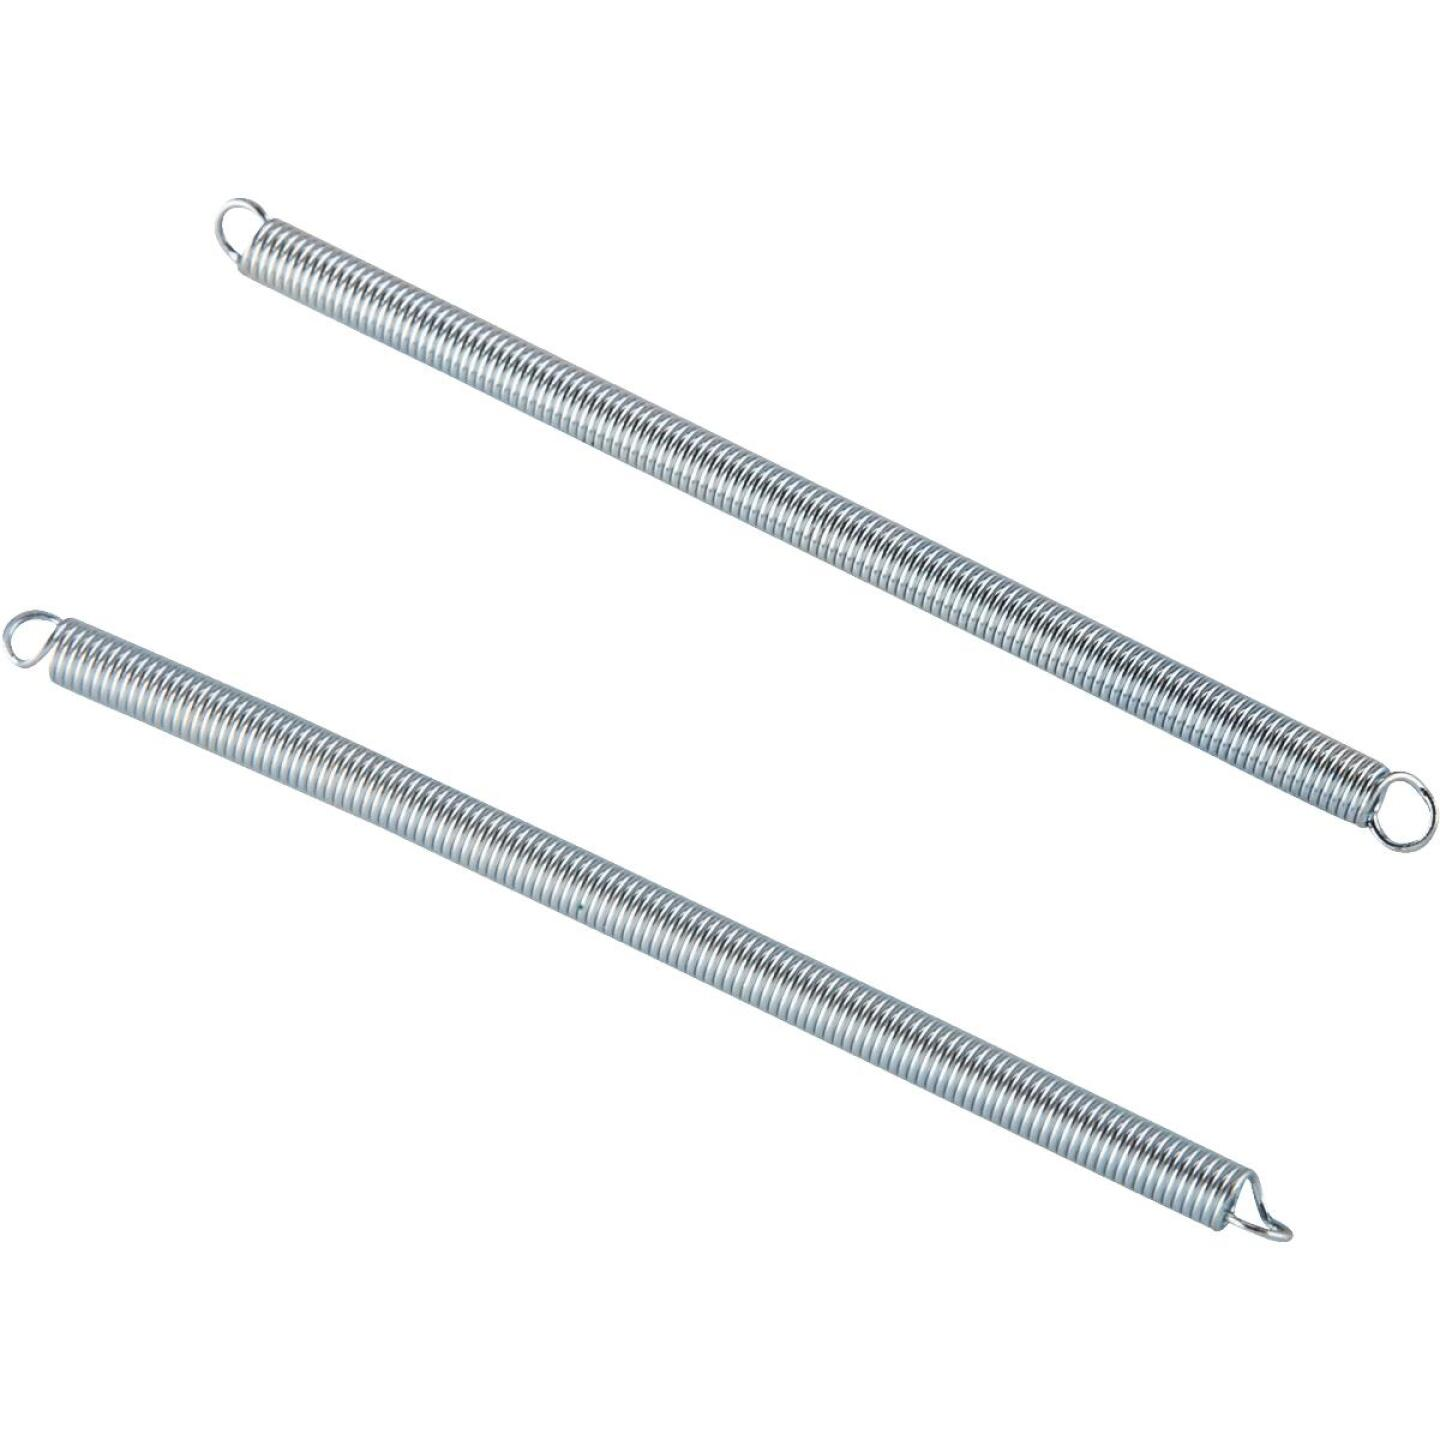 Century Spring 2 In. x 3/4 In. Extension Spring (2 Count) Image 1